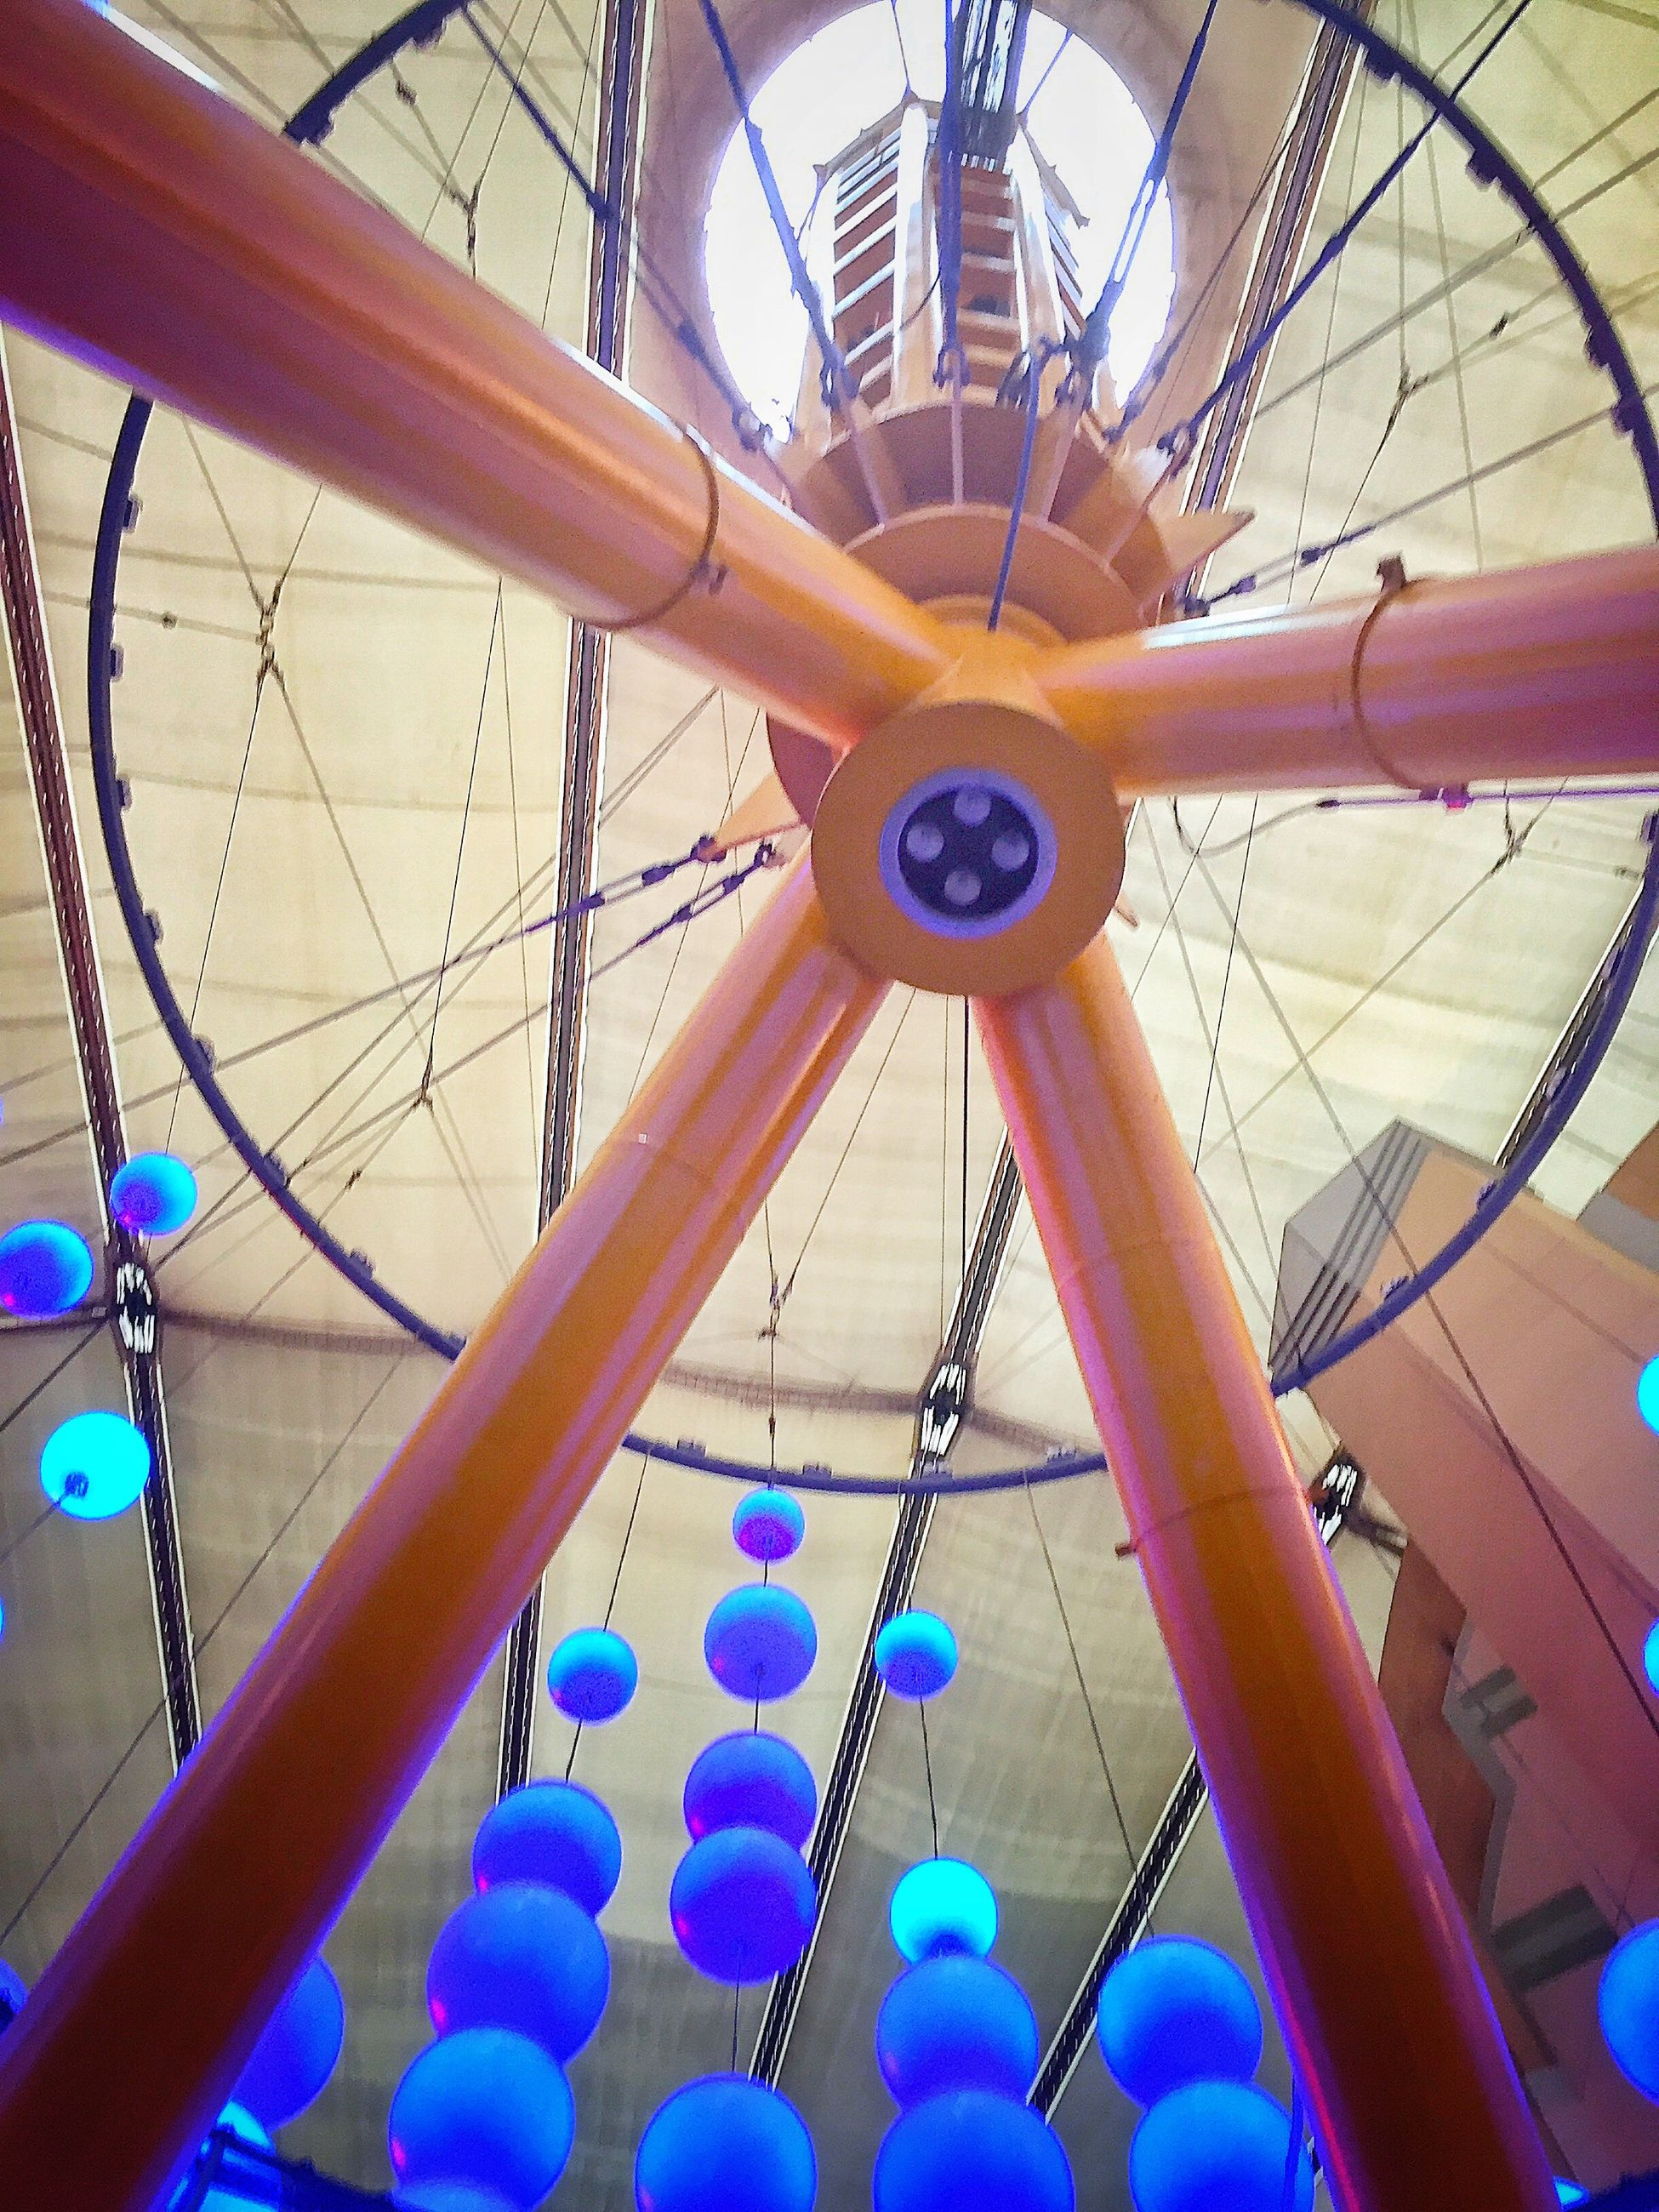 low angle view, metal, amusement park, indoors, ceiling, amusement park ride, circle, metallic, built structure, ferris wheel, arts culture and entertainment, wheel, architecture, pattern, design, blue, day, no people, railing, close-up